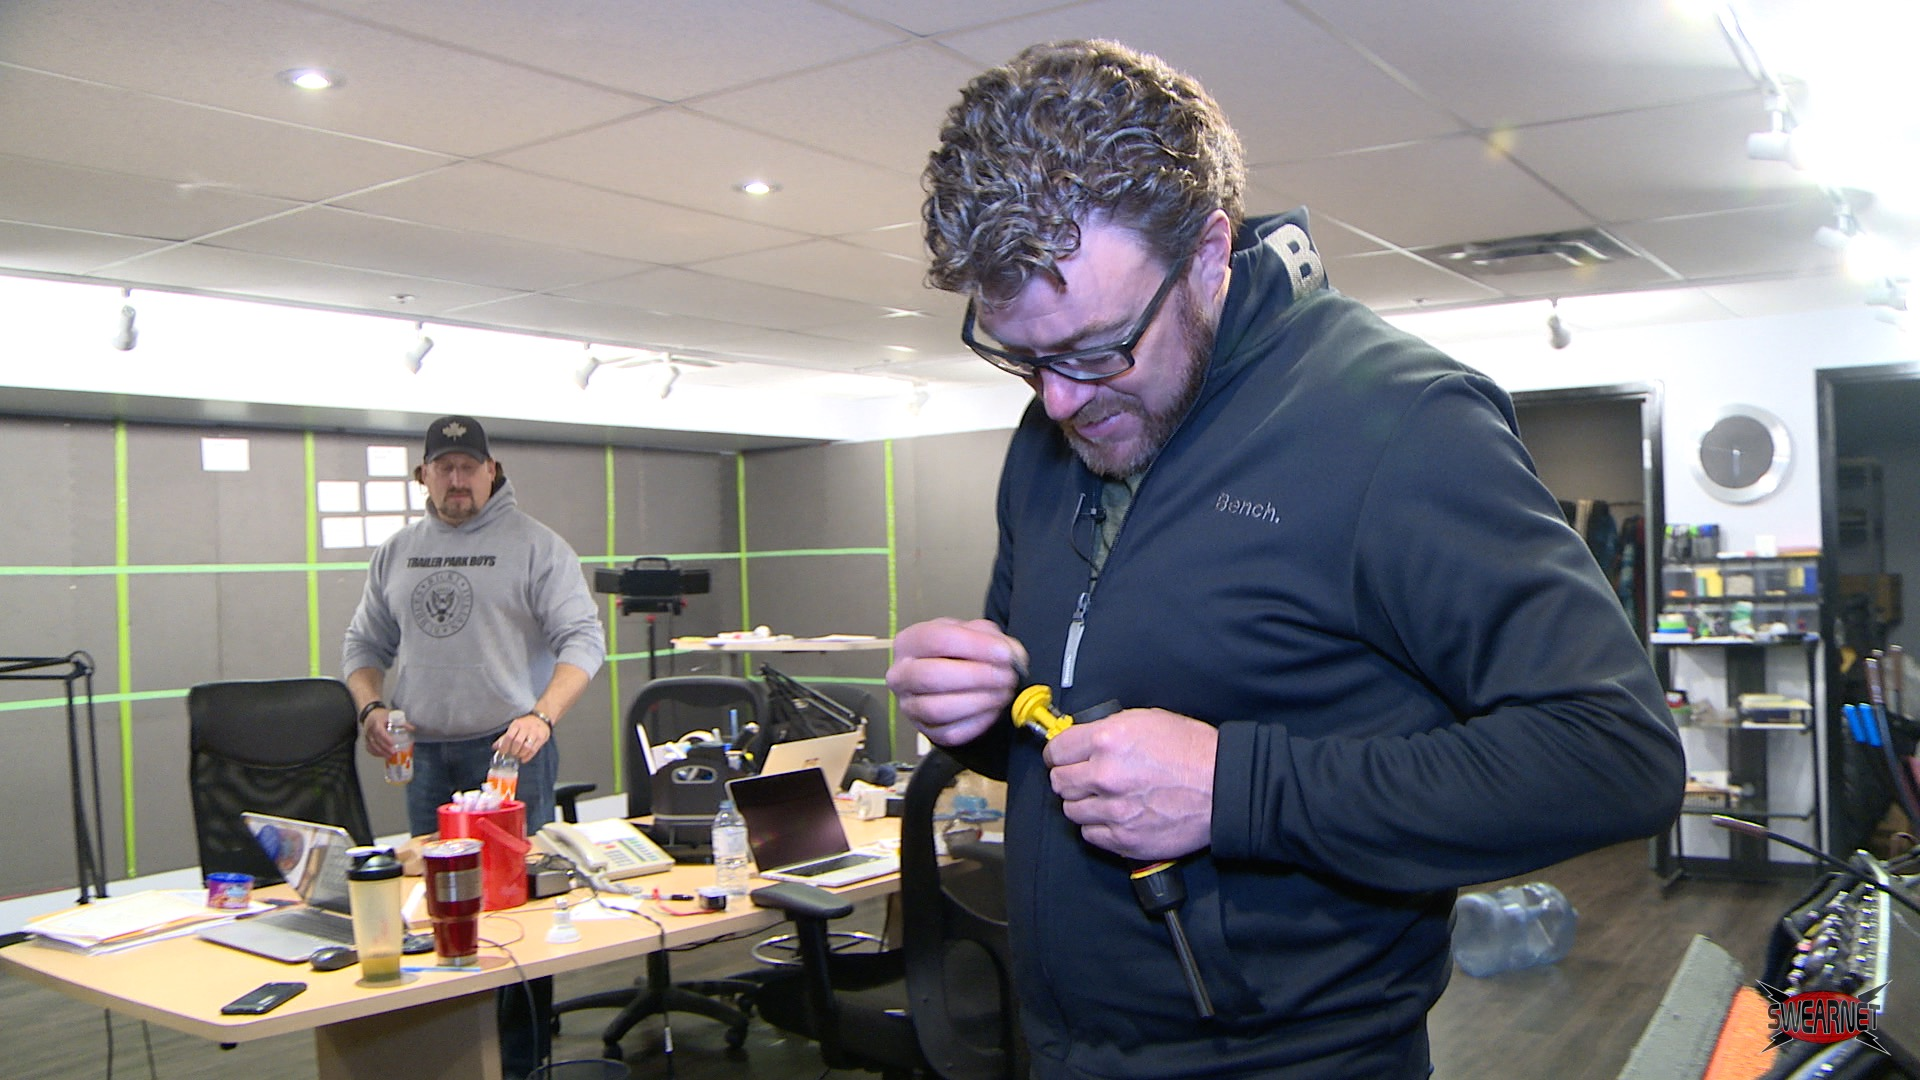 Robb and JP do some electrical repairs at the SwearNet studio!